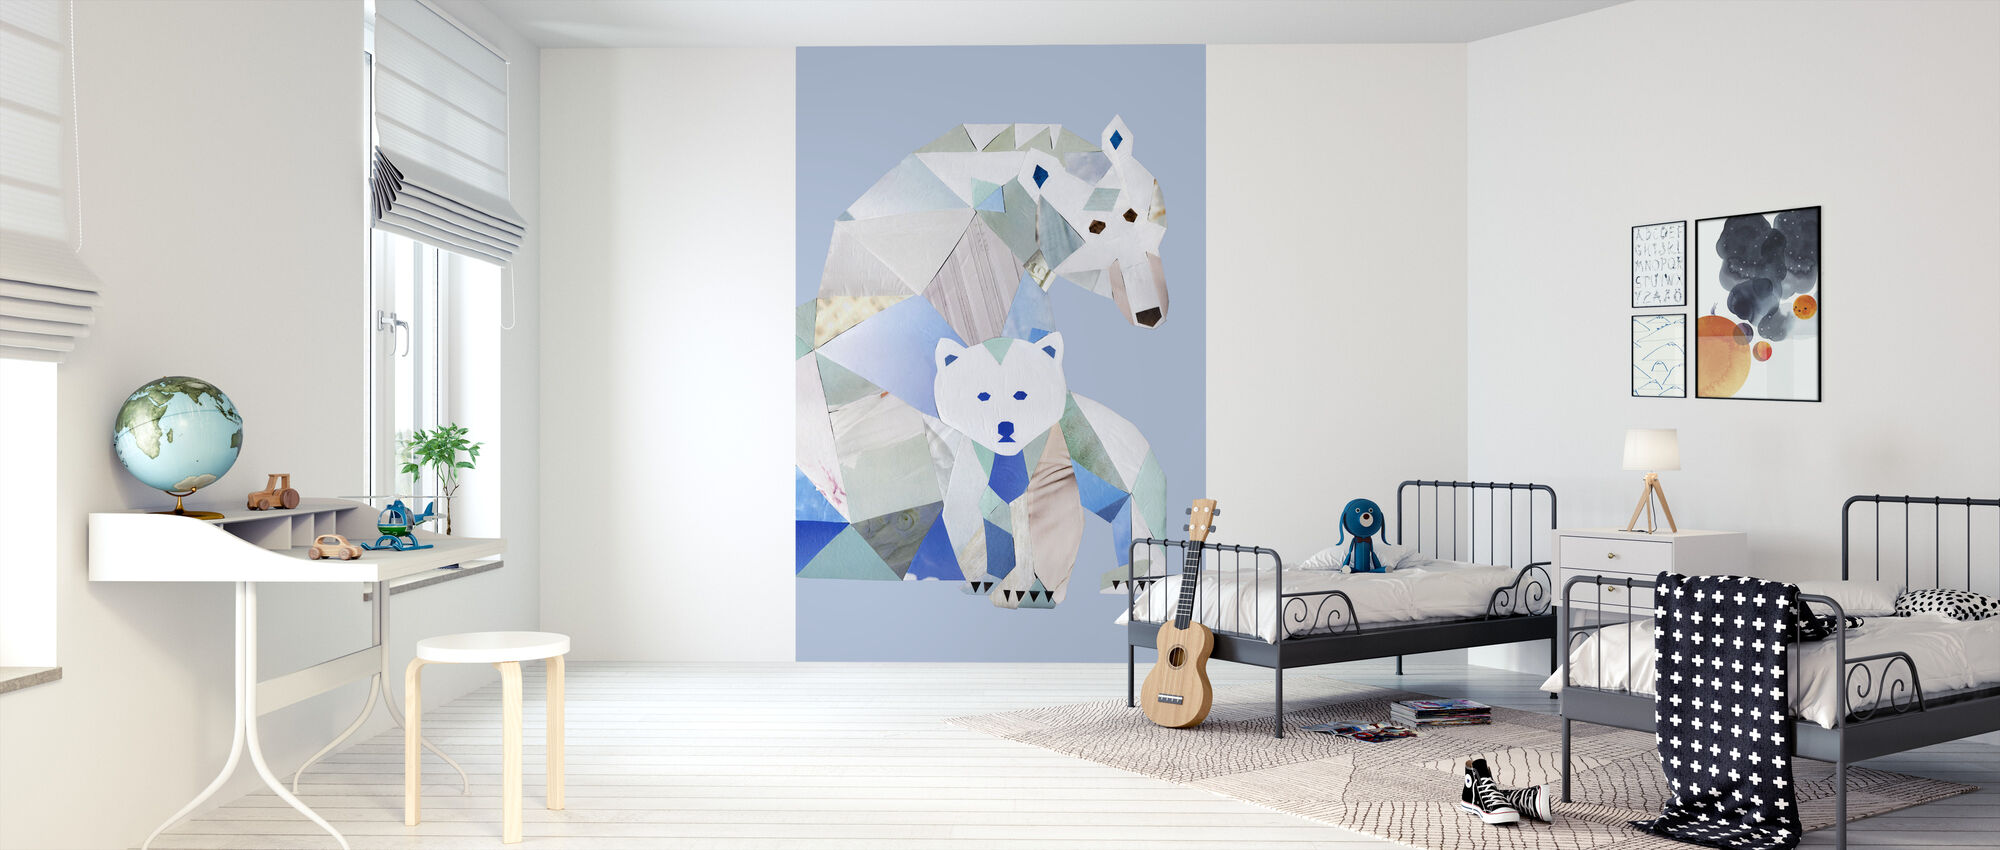 Polar Bears Gray - Wallpaper - Kids Room